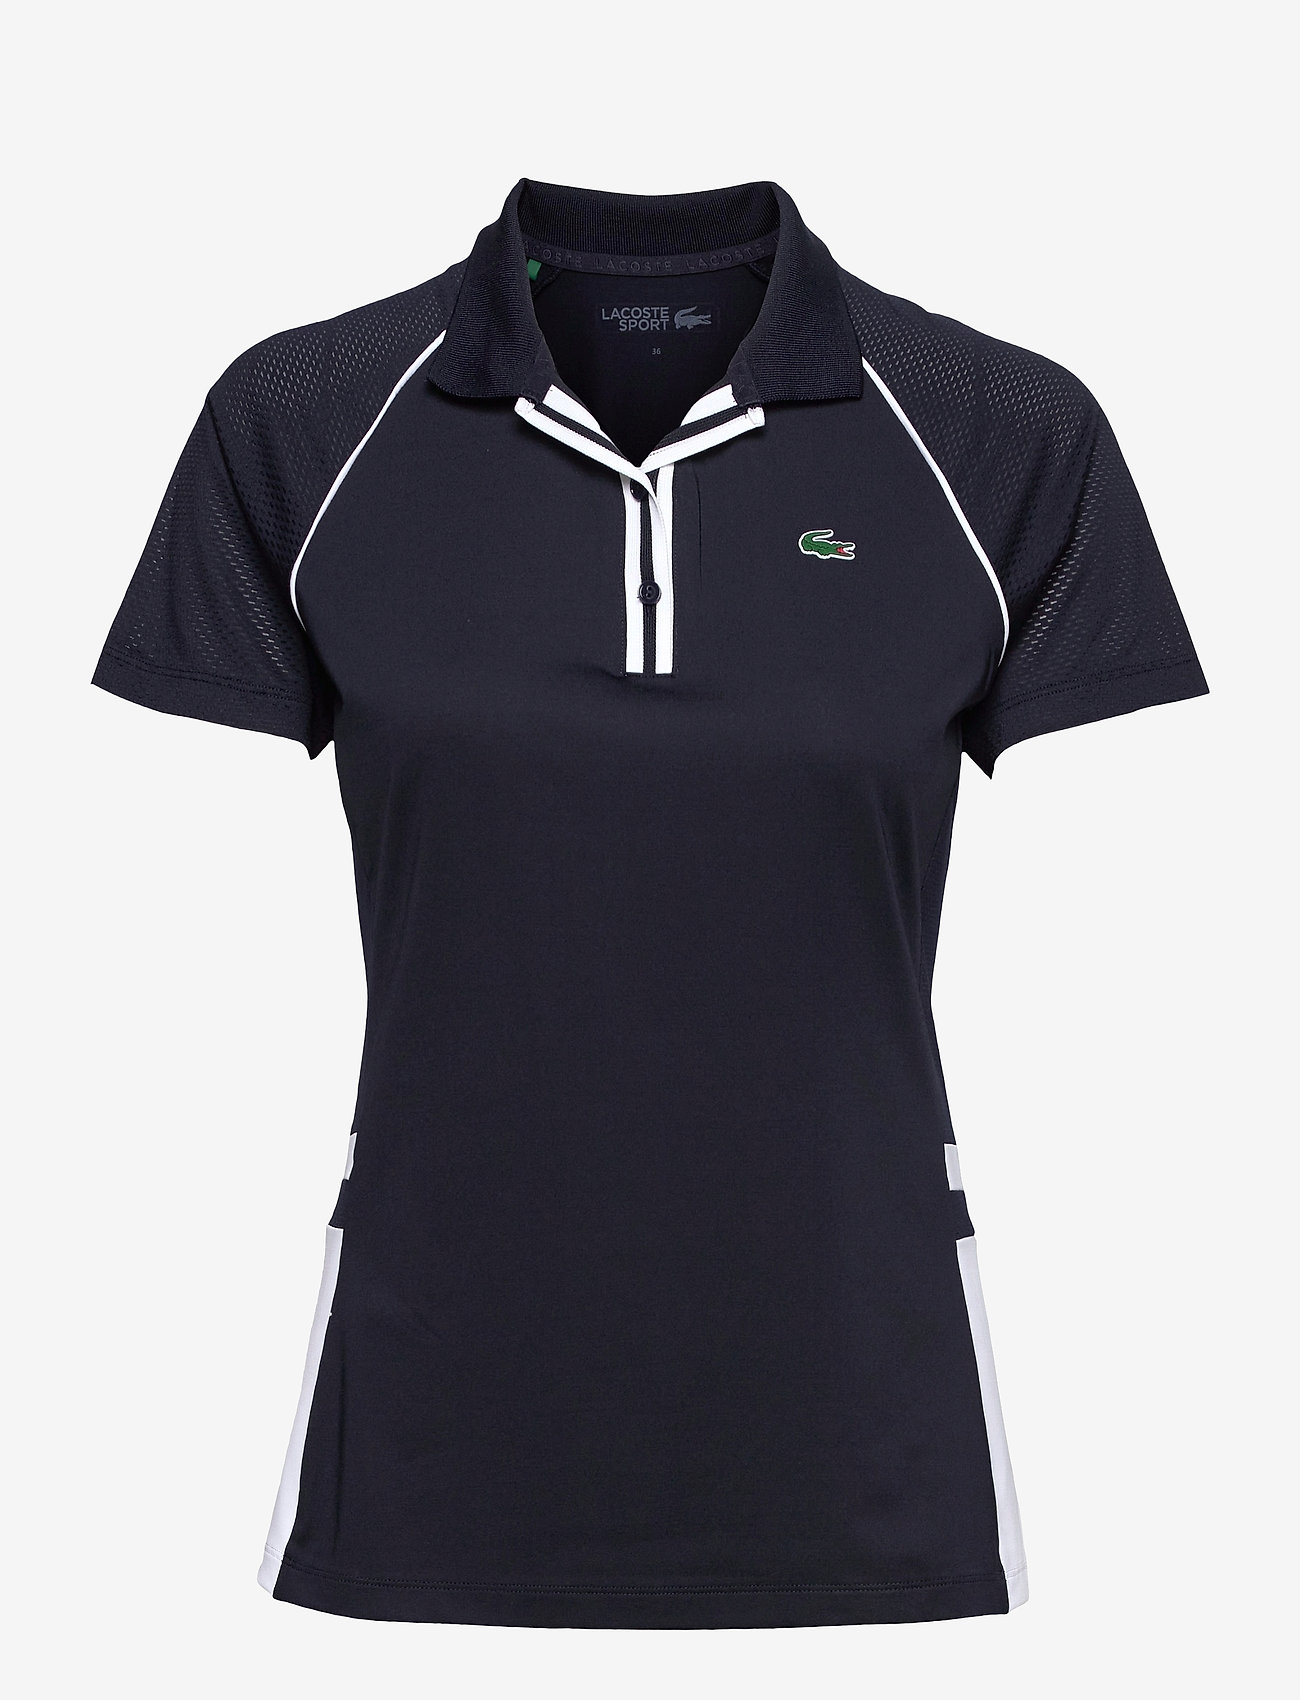 Lacoste - Women s S/S polo - polo's - navy blue/white-navy blue - 0